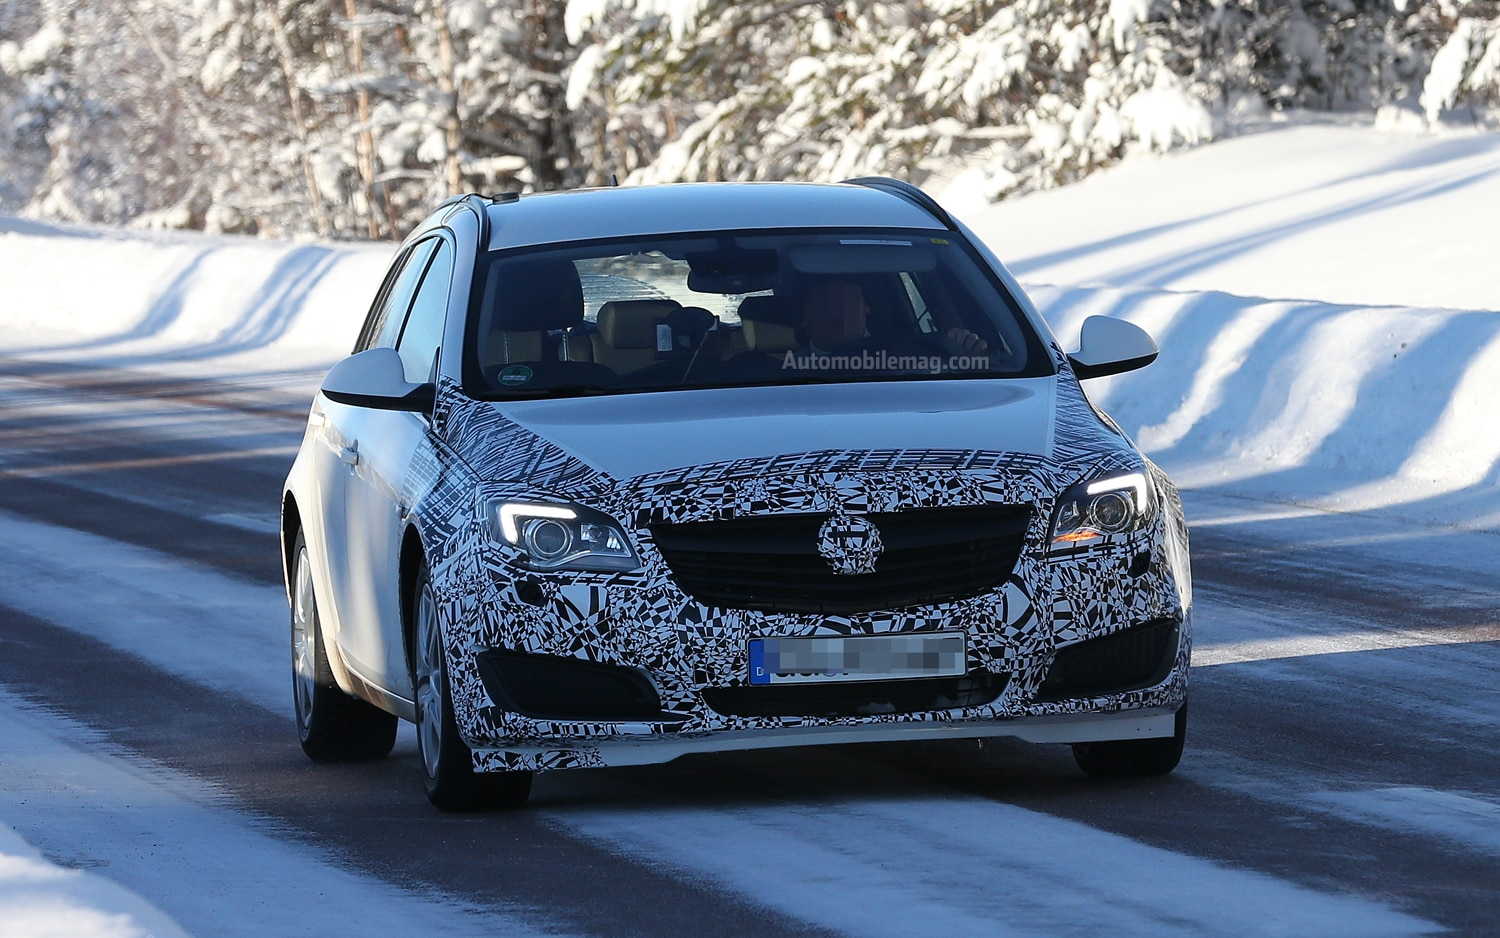 Spied: Opel Insignia Sport Tourer Hints at Potential Buick